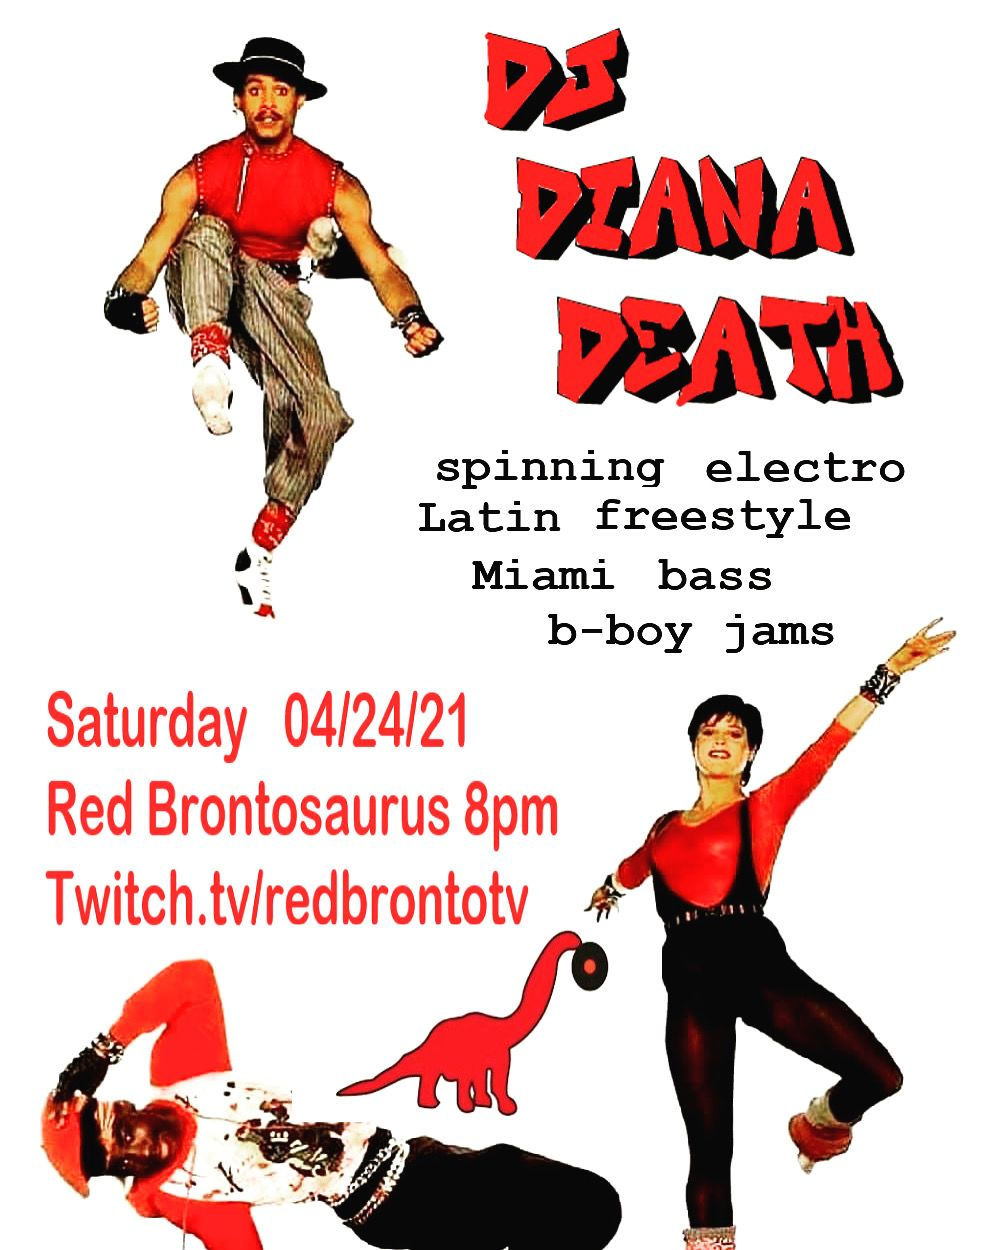 DJ Diana Death at Red Brontosaurus Records